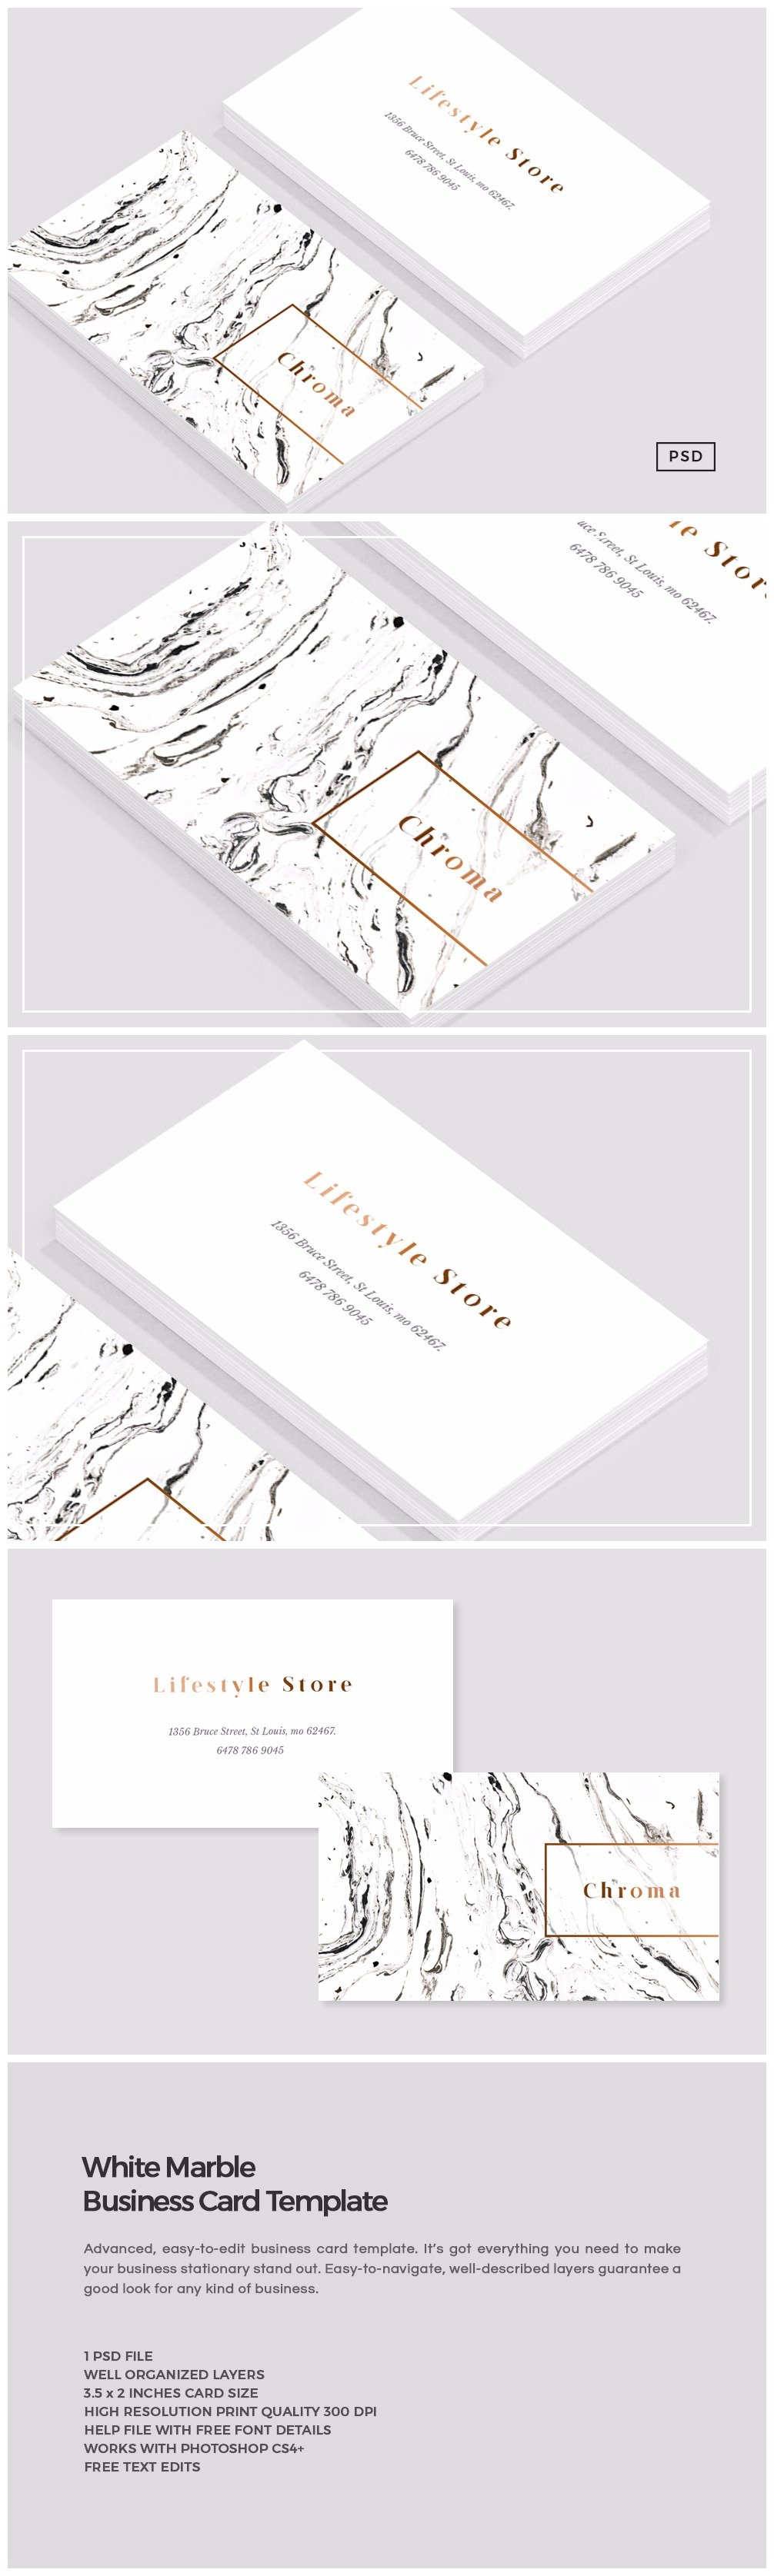 How to design impressive business cards using templates creative white marble copper business card reheart Gallery